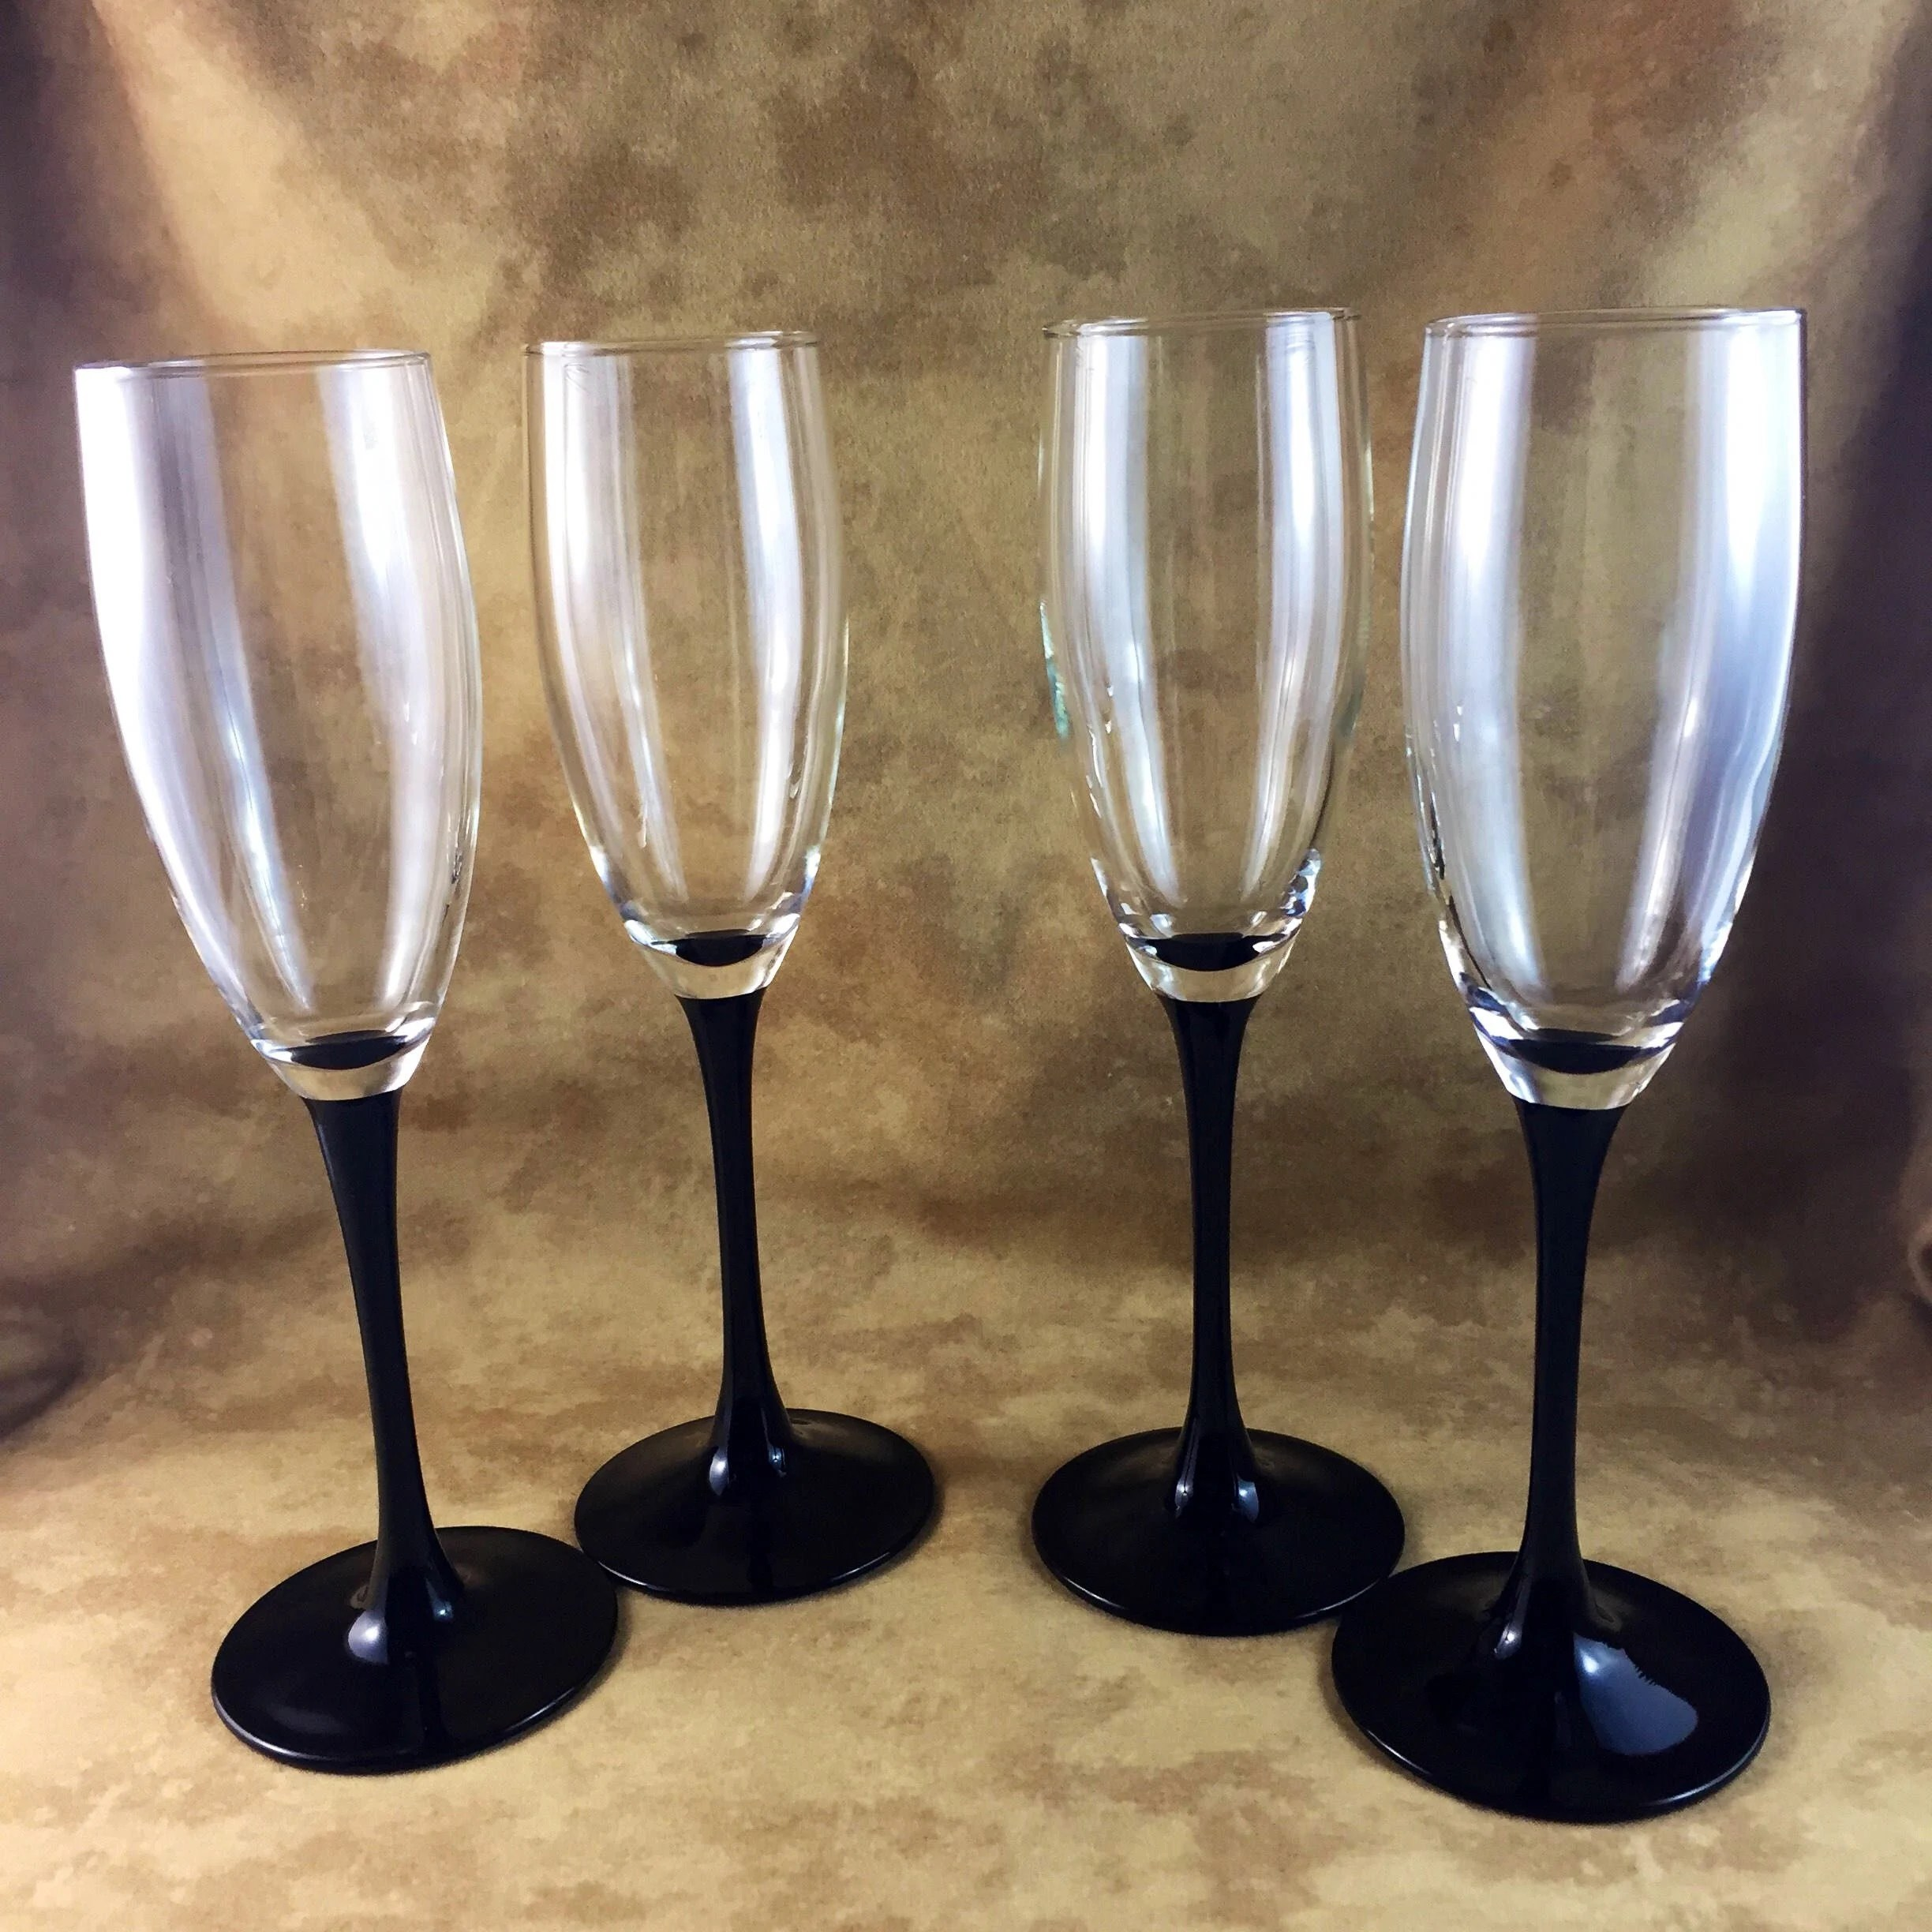 Wine Glasses With Black Stems Luminarc Champagne Glasses Set Of Four Tall Champagne